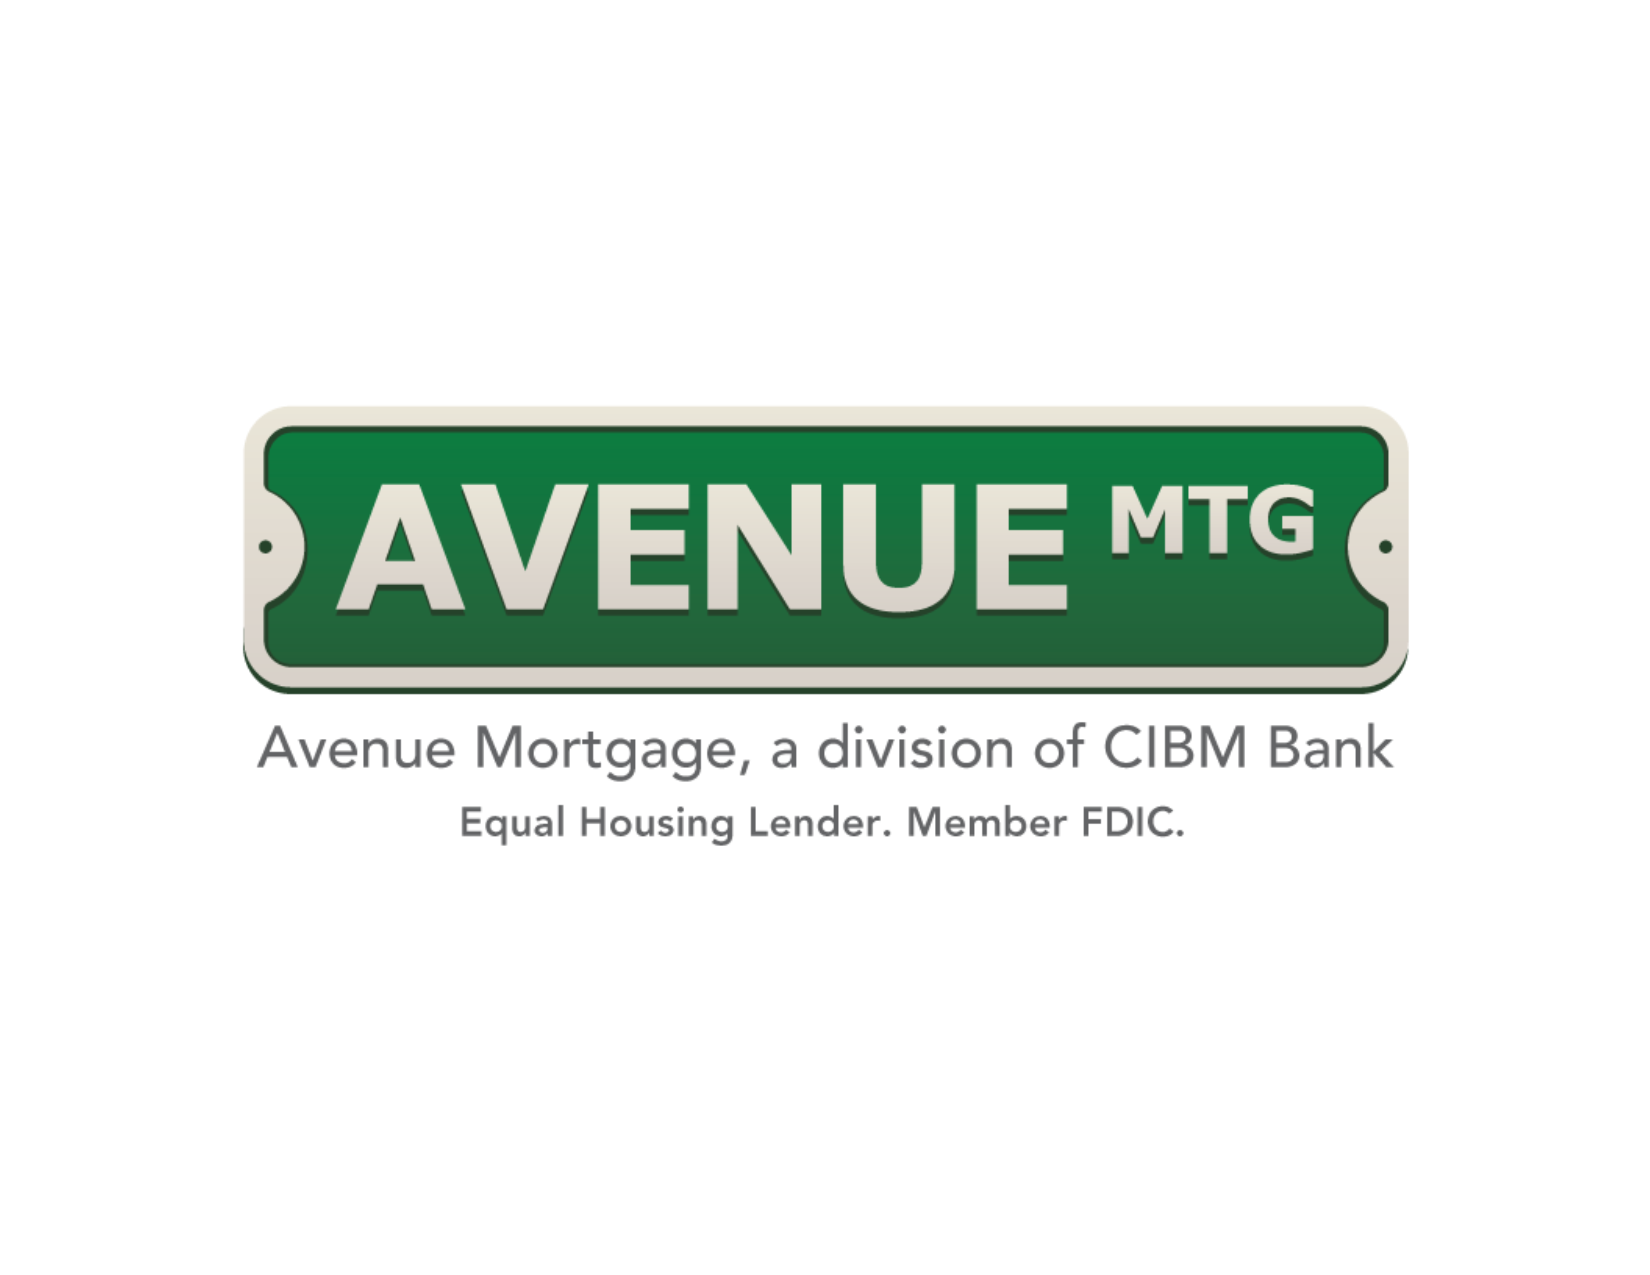 Ken Amstutz, Avenue Mortgage